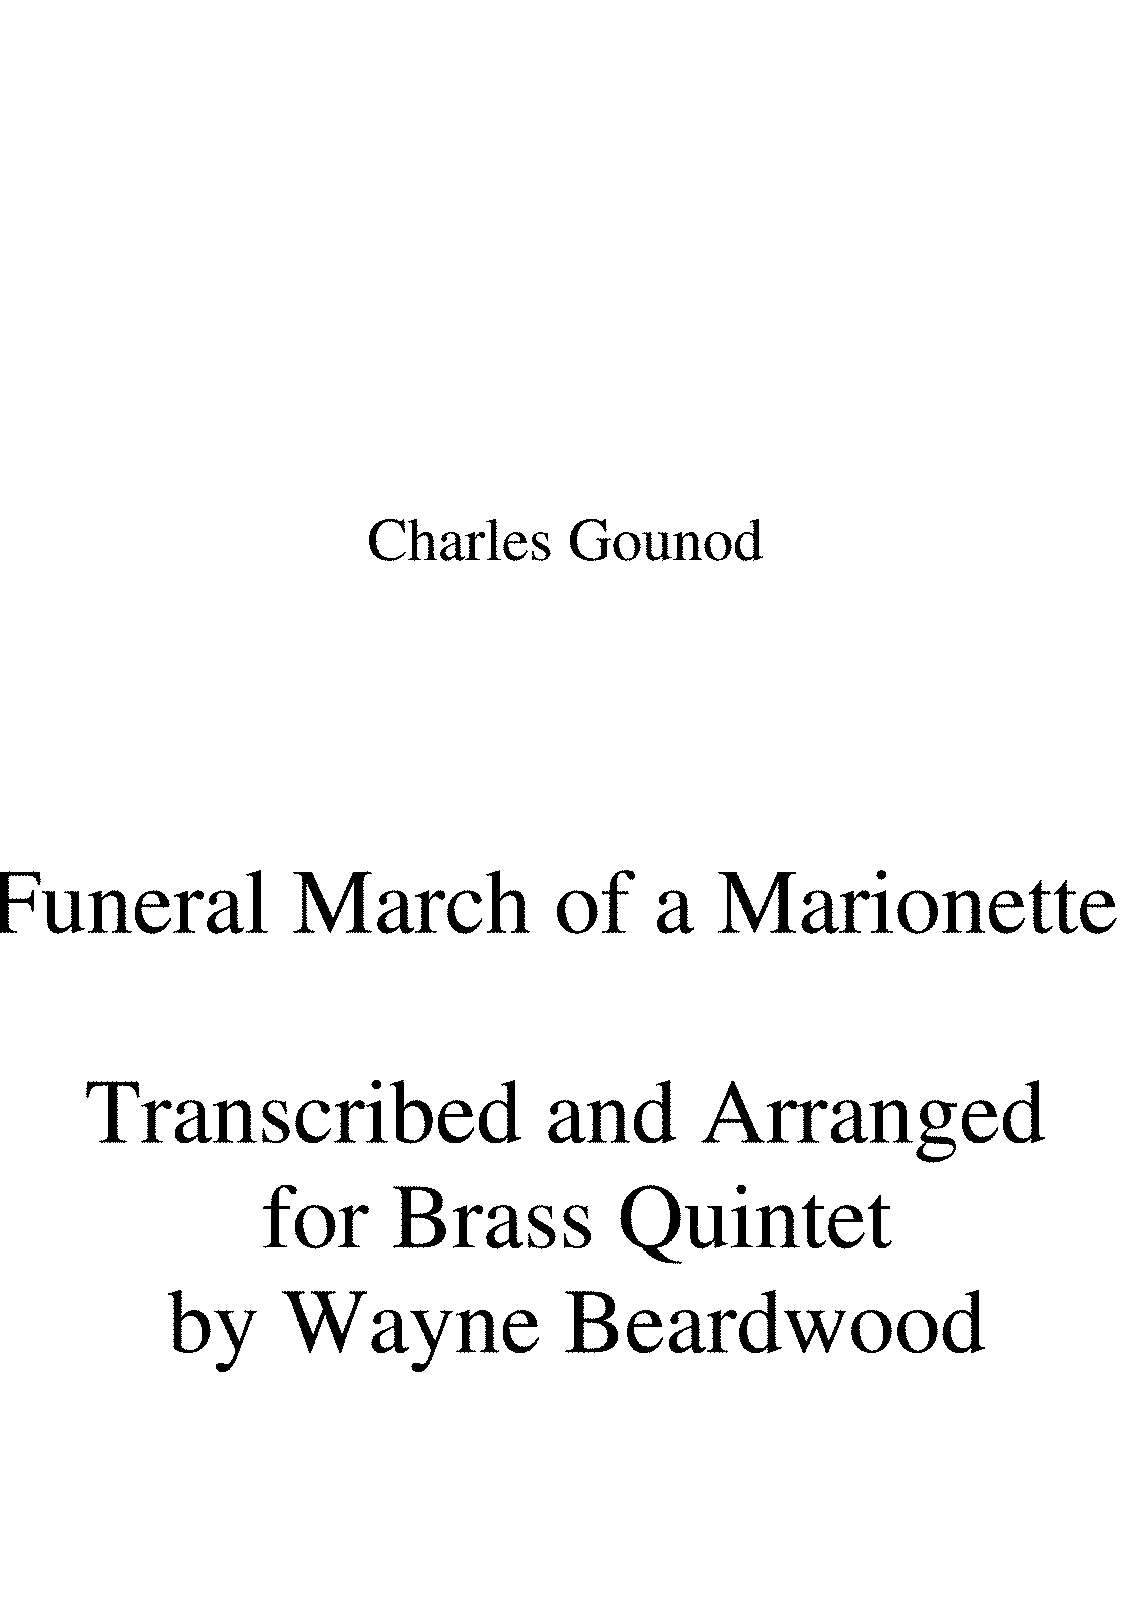 PMLP05016-Funeral March of a Marionette Complete Score pdf.pdf